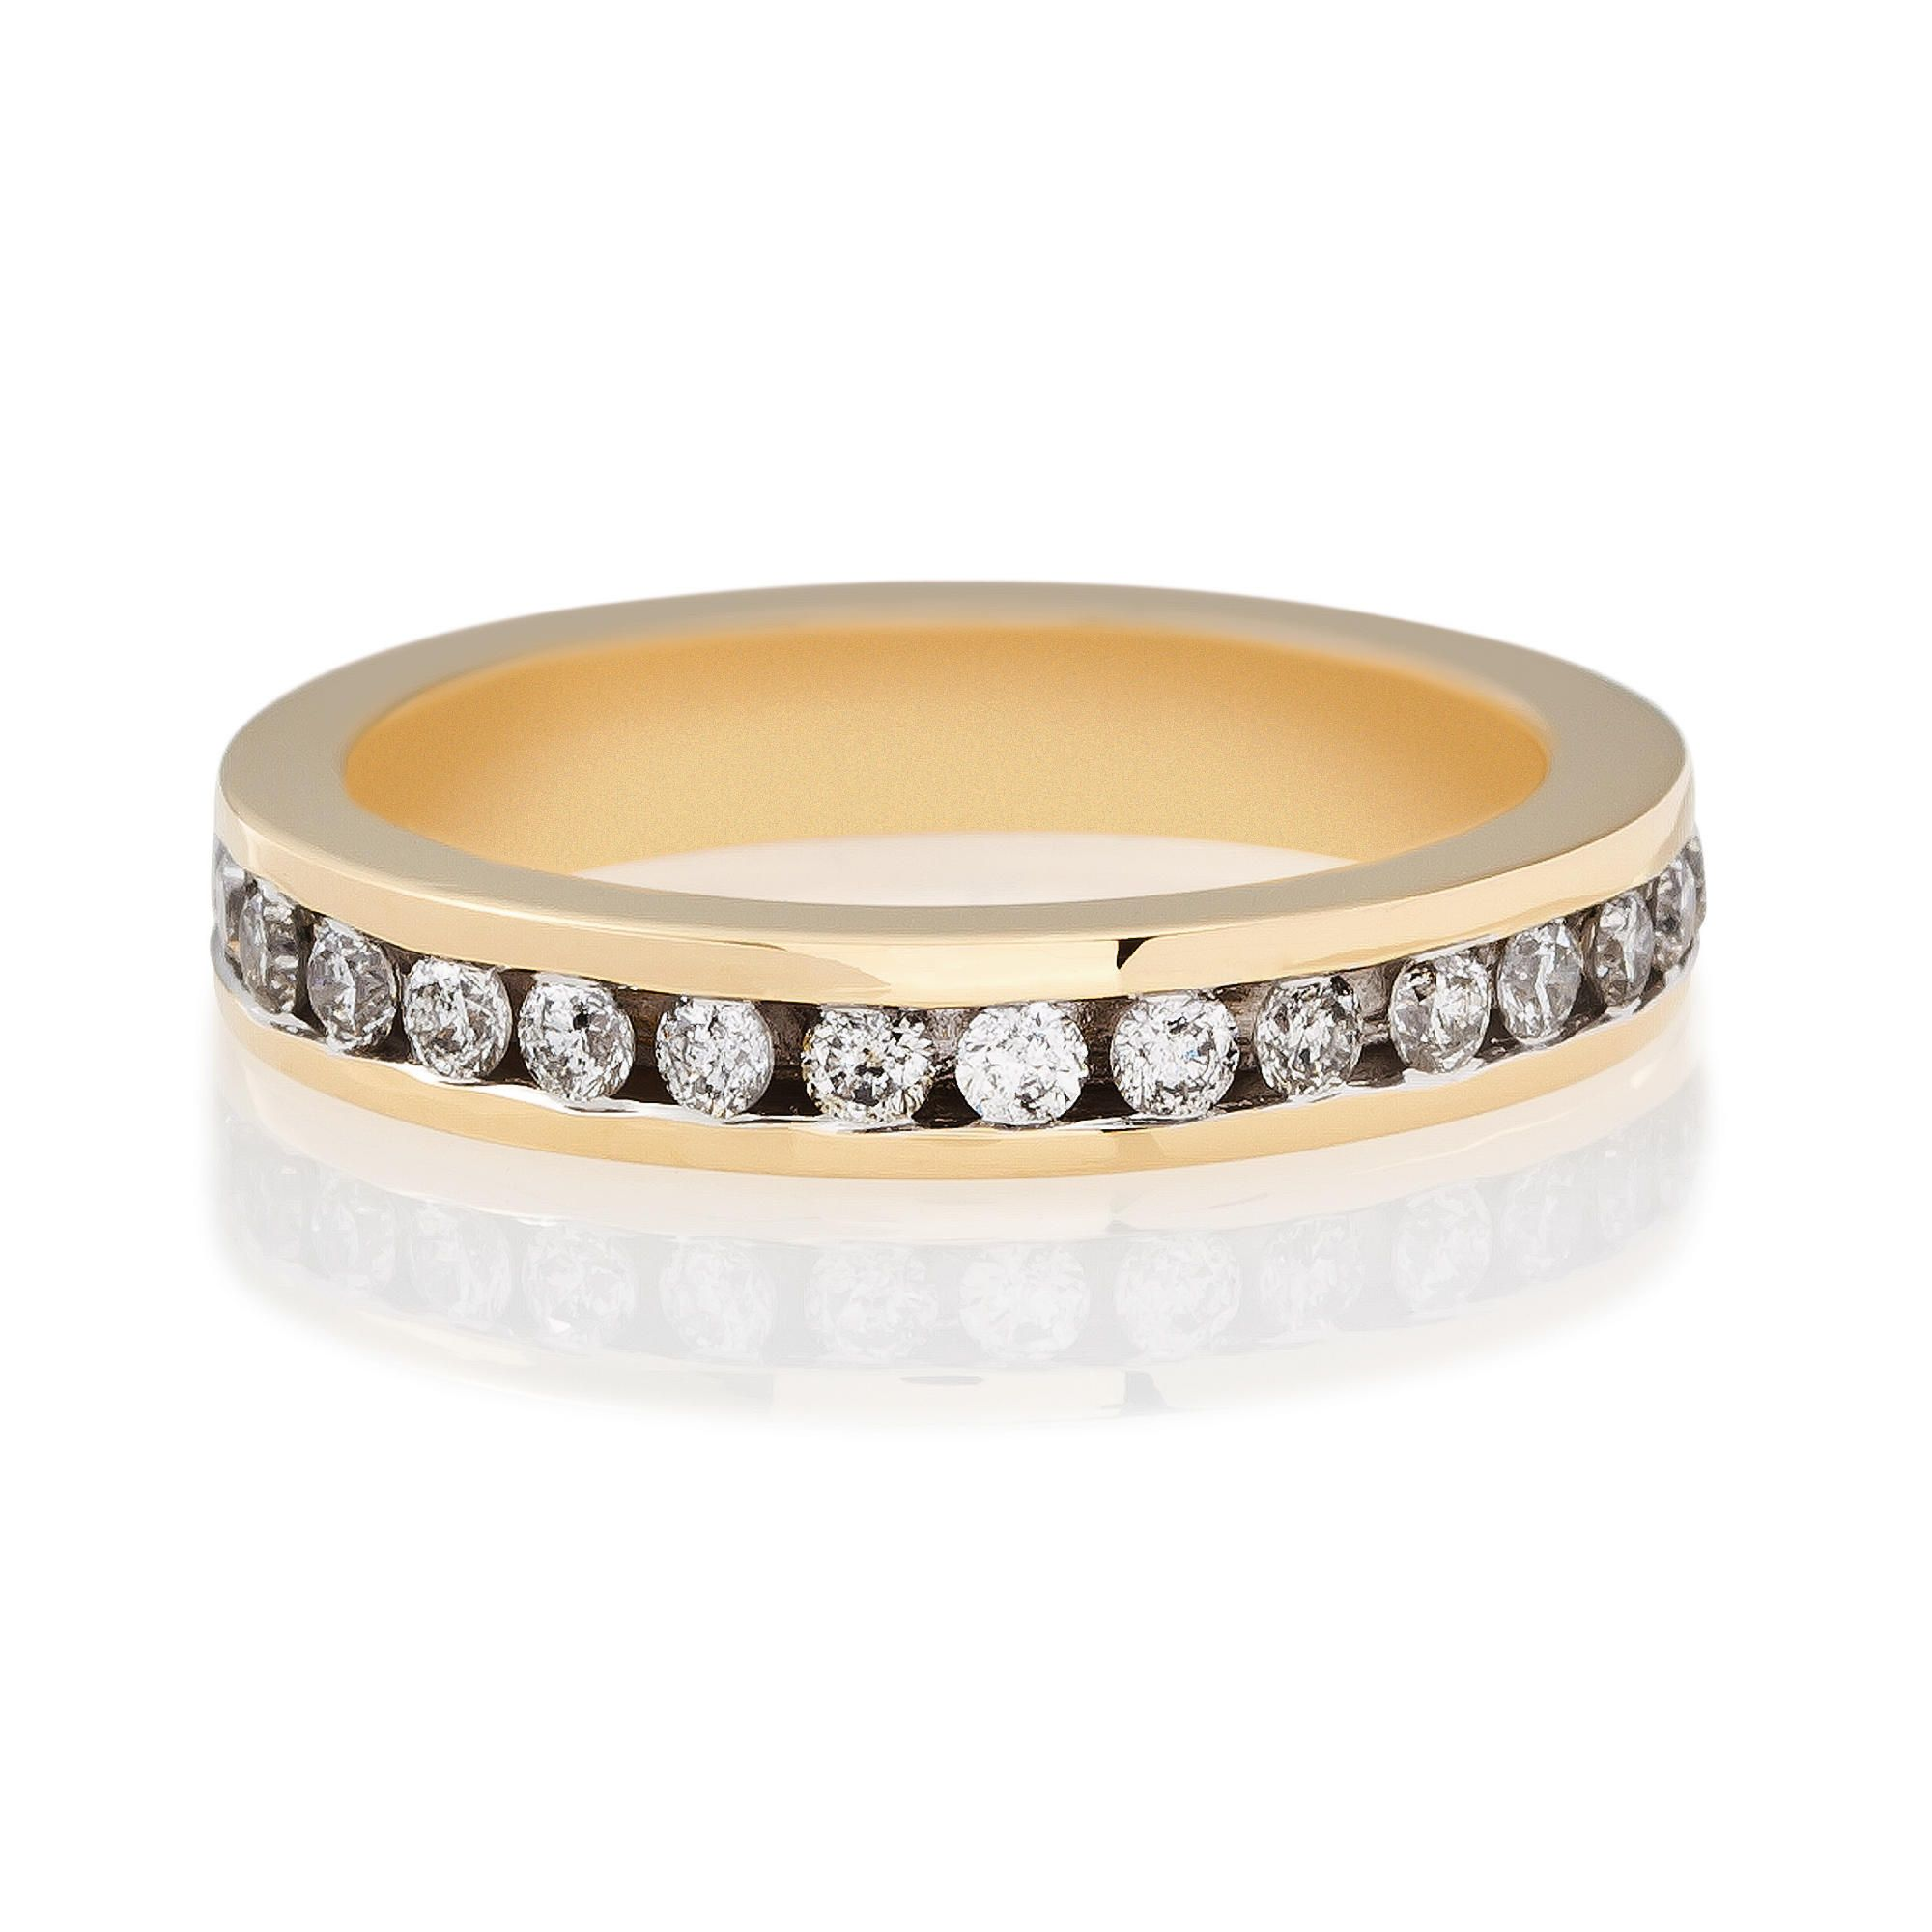 9ct Gold 1/2ct Diamond Eternity Ring, N at Tesco Direct